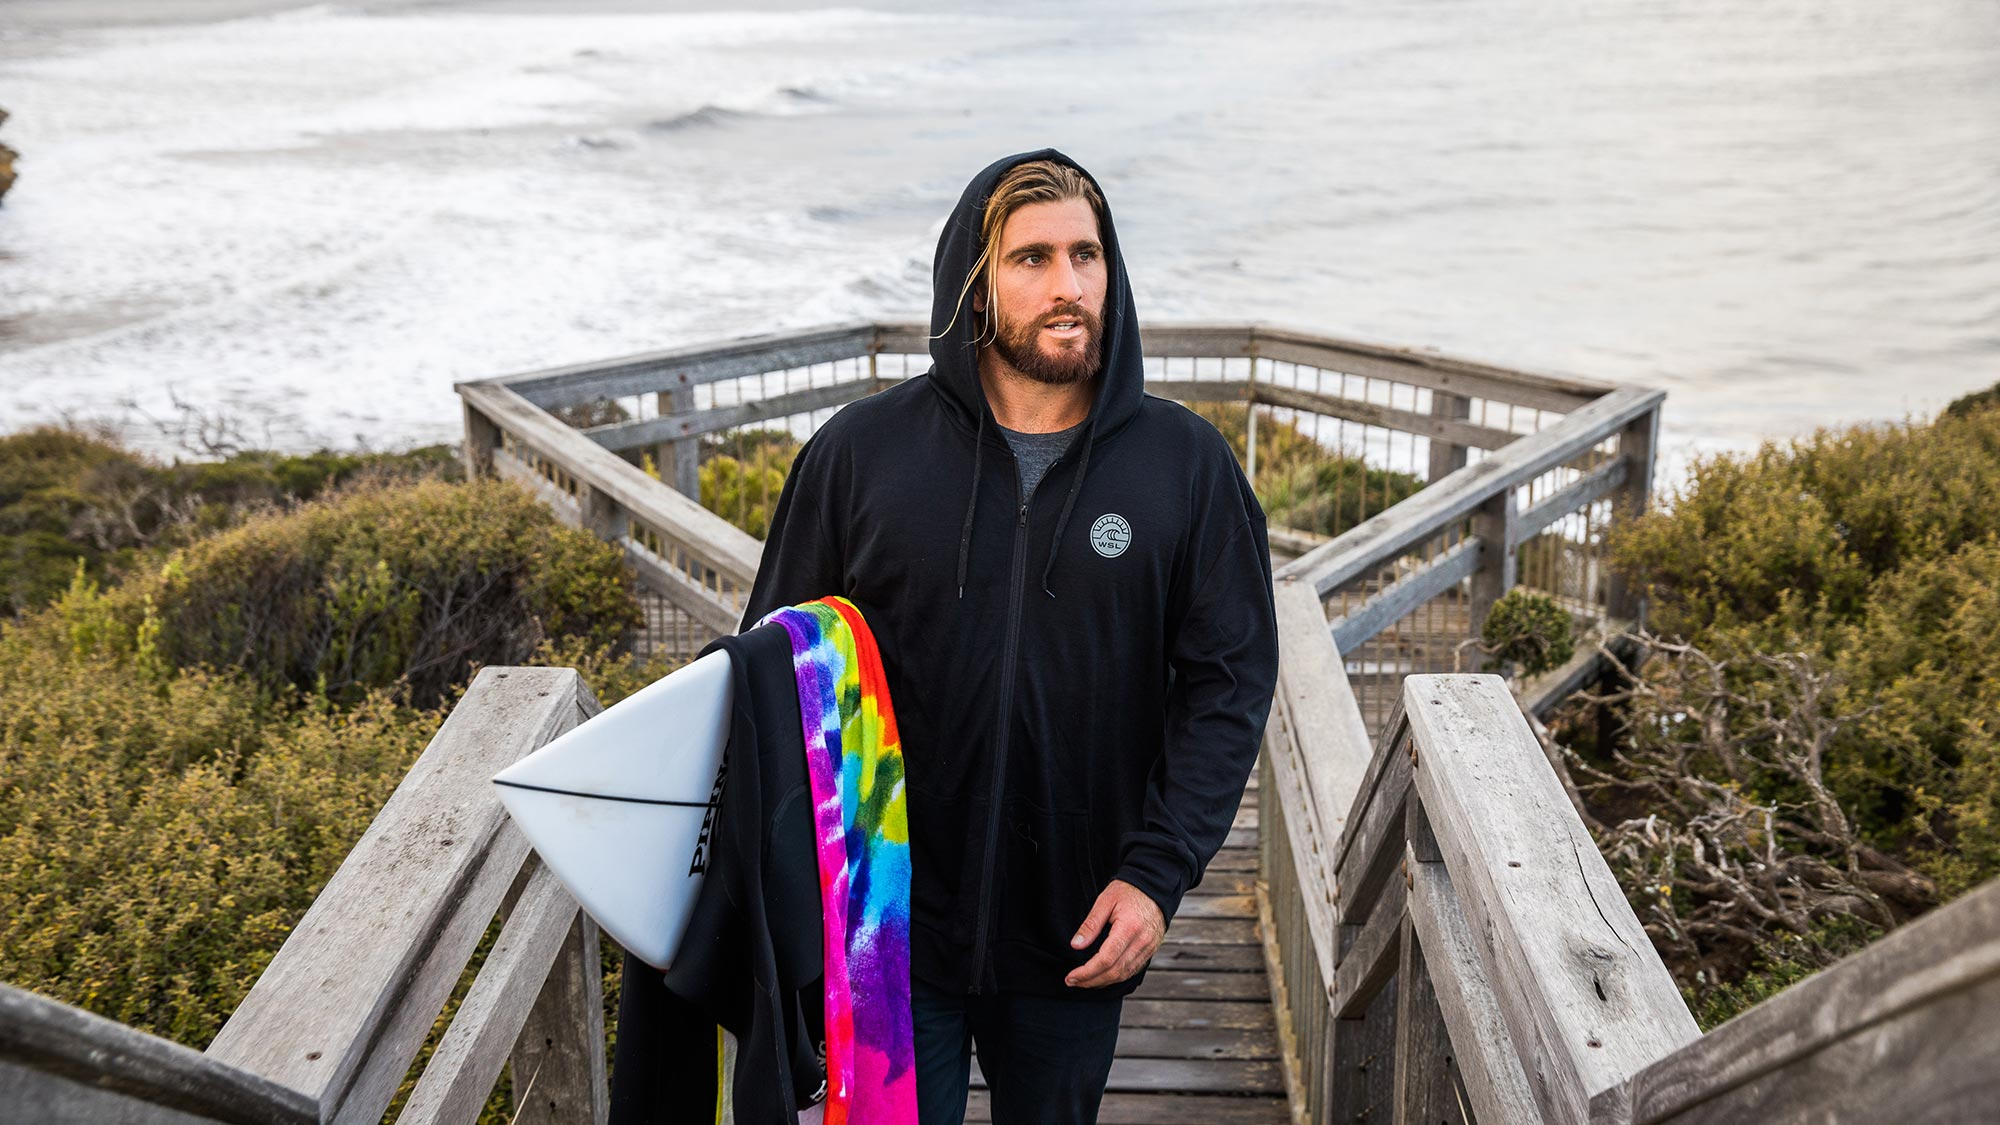 Surfer Wade Carmichael in WSL's new Merino wool apparel. © The Woolmark Company